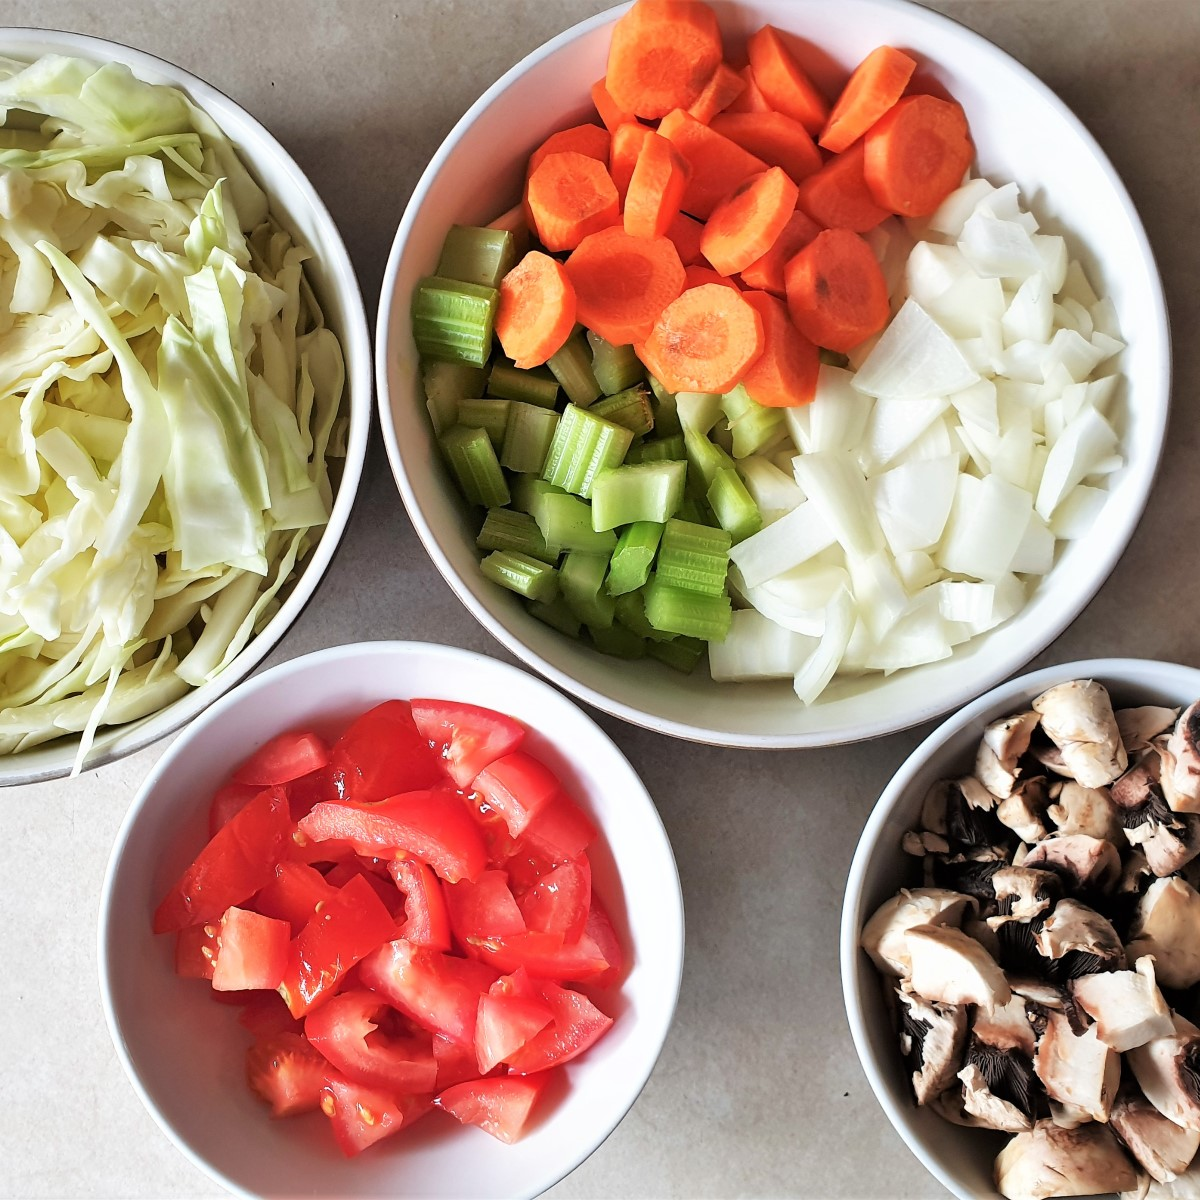 Bowls of chopped vegetables for the meatball soup.